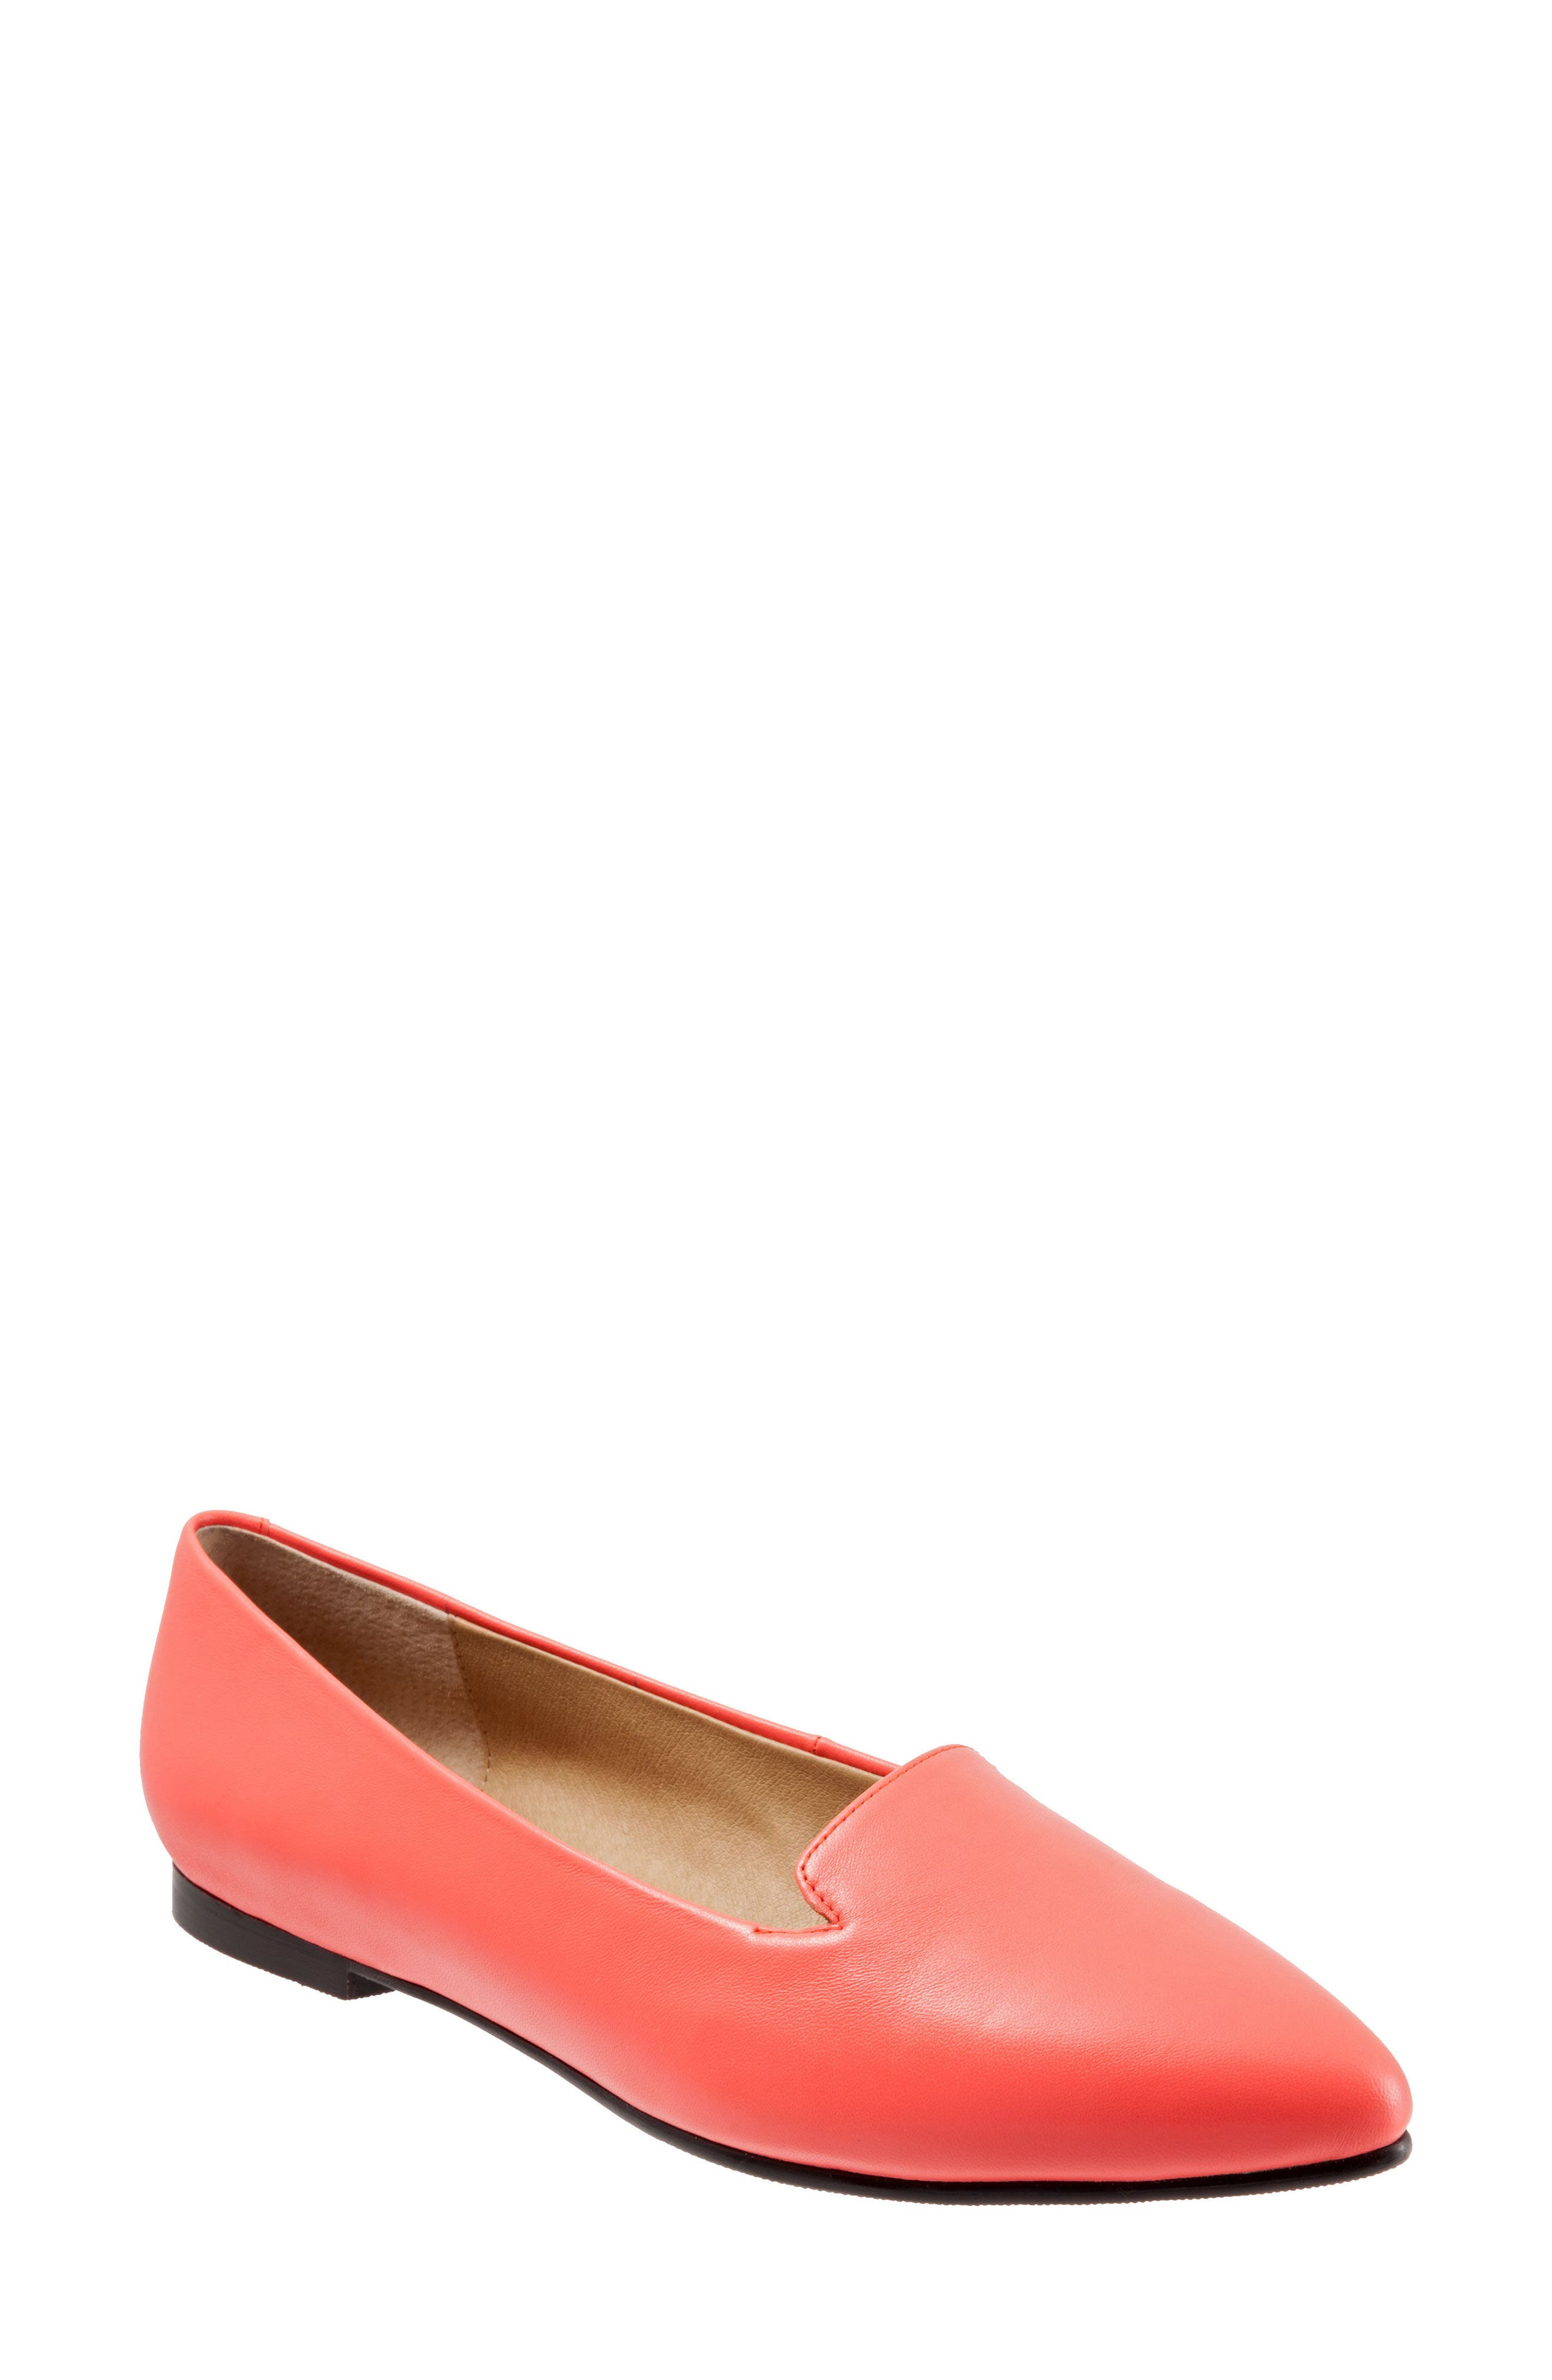 Alternate Image 1 Selected - Trotters Harlowe Pointy Toe Loafer (Women)